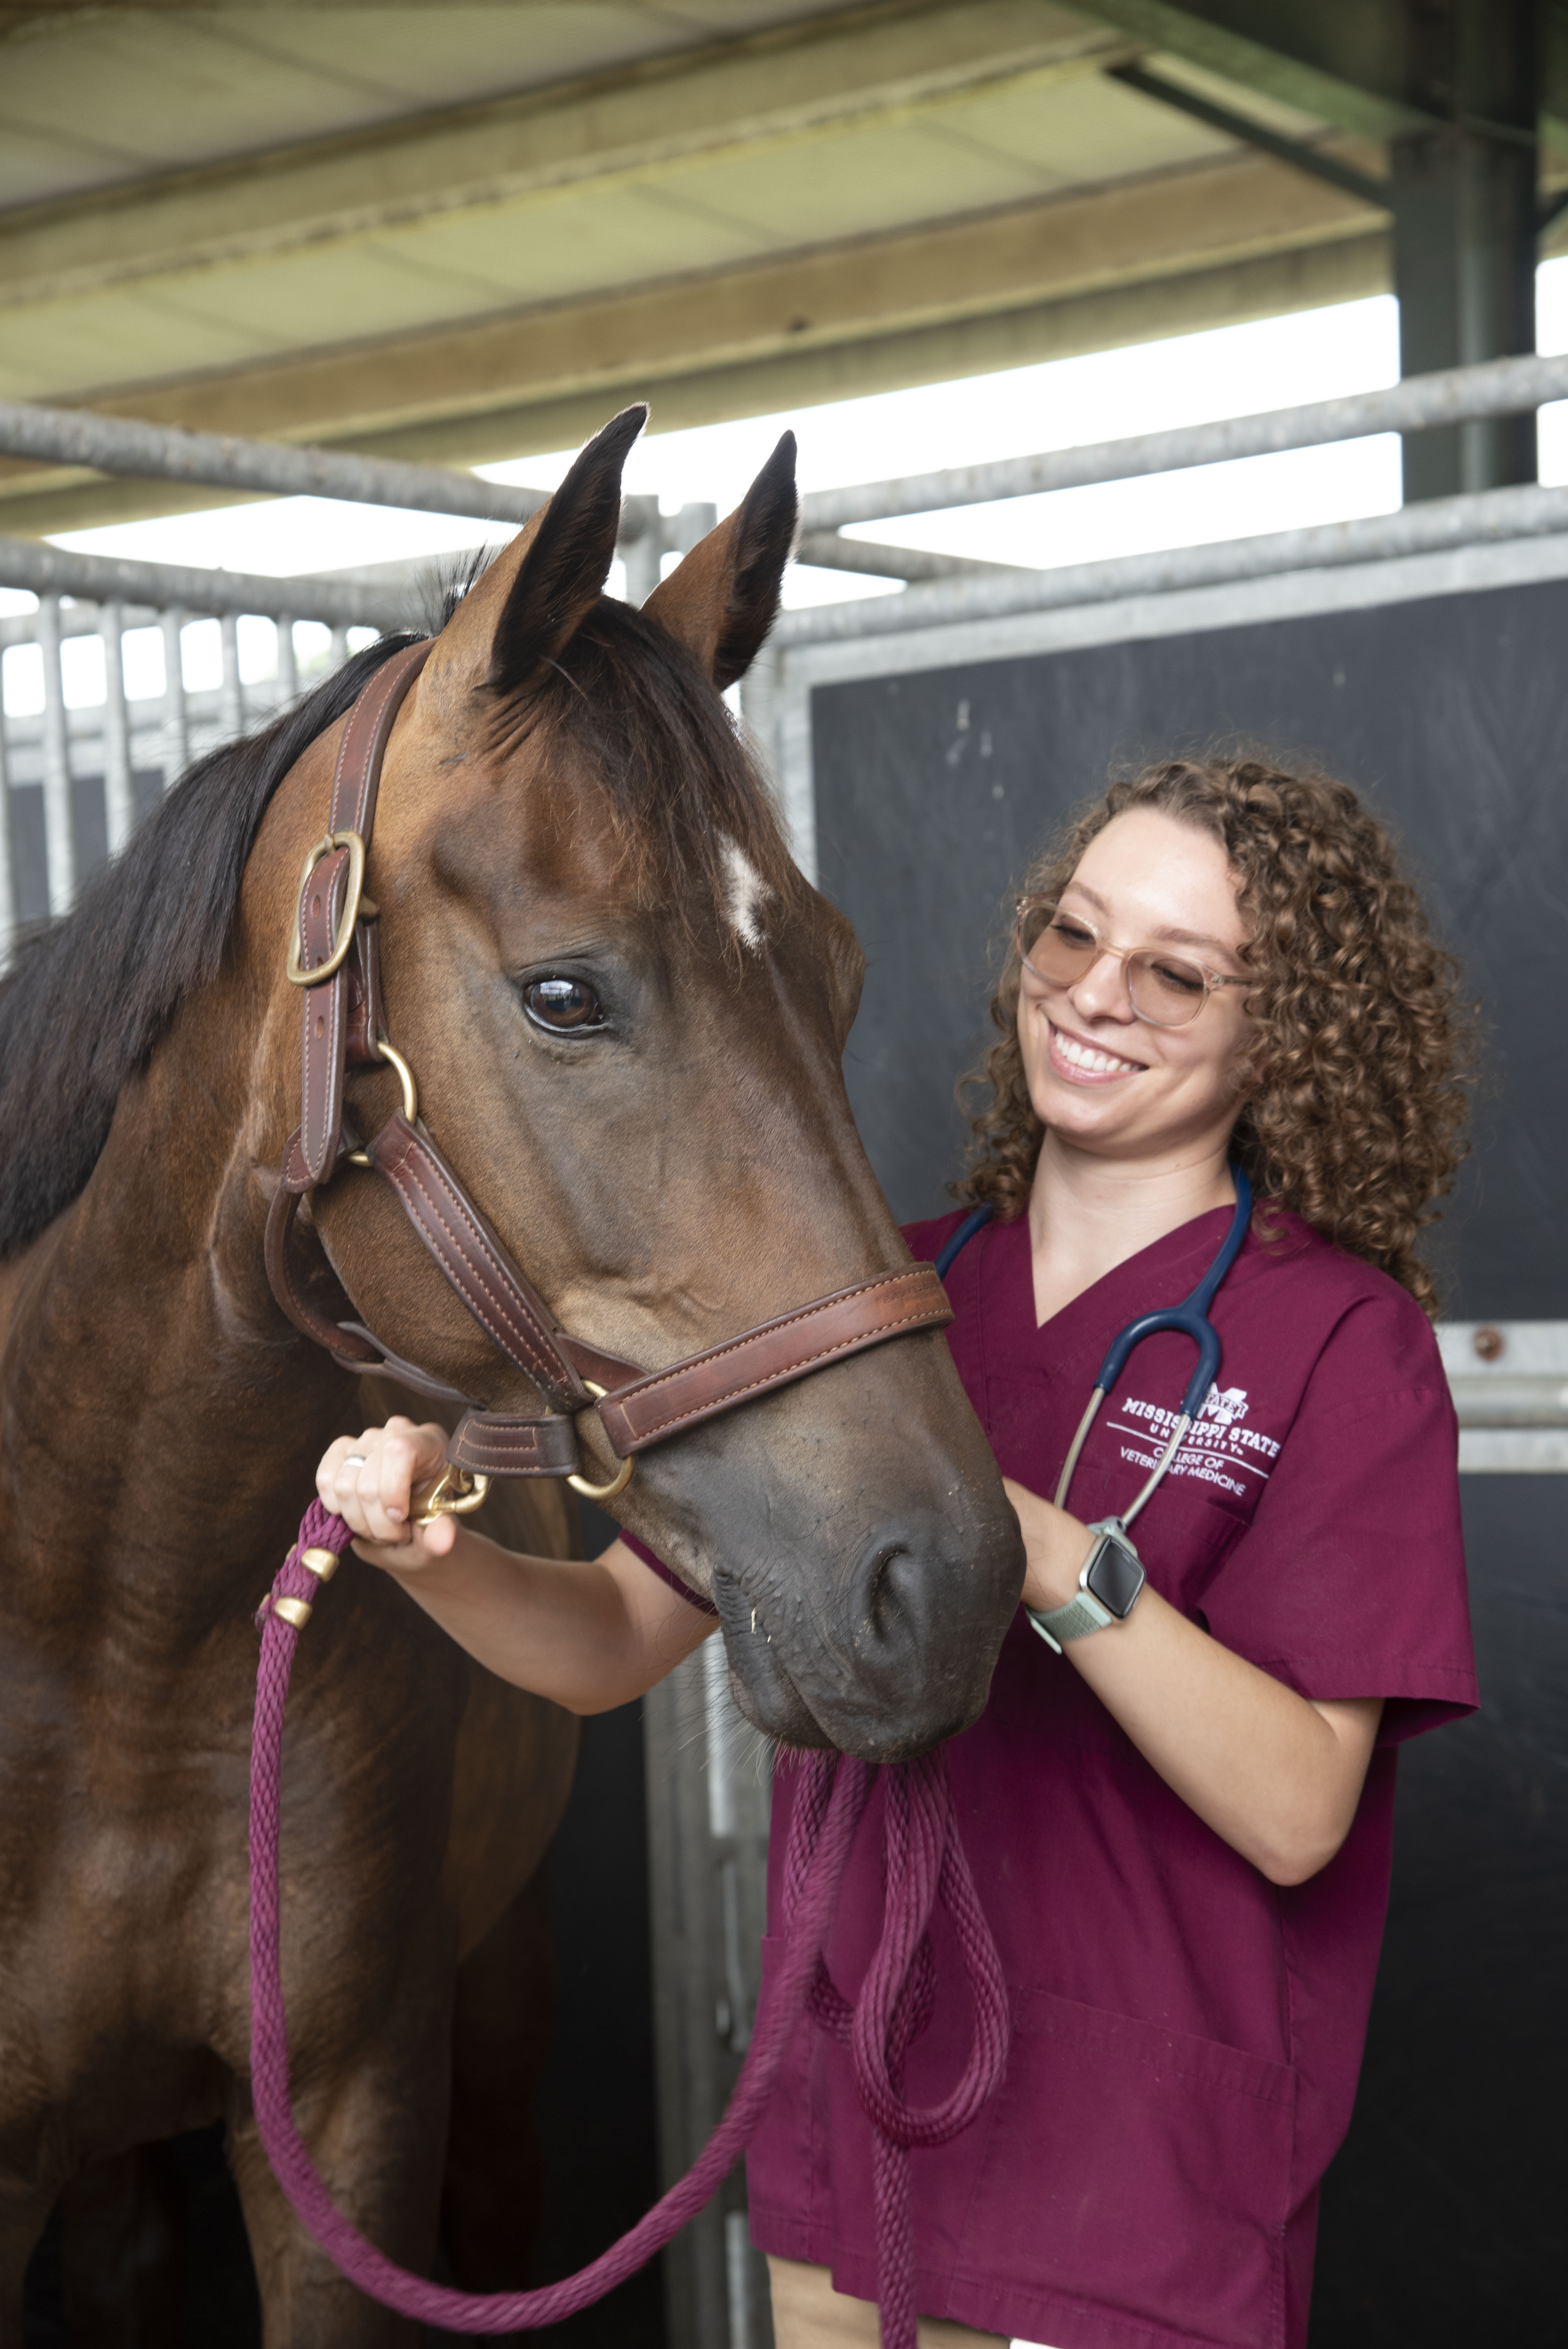 A veterinary student poses with a horse